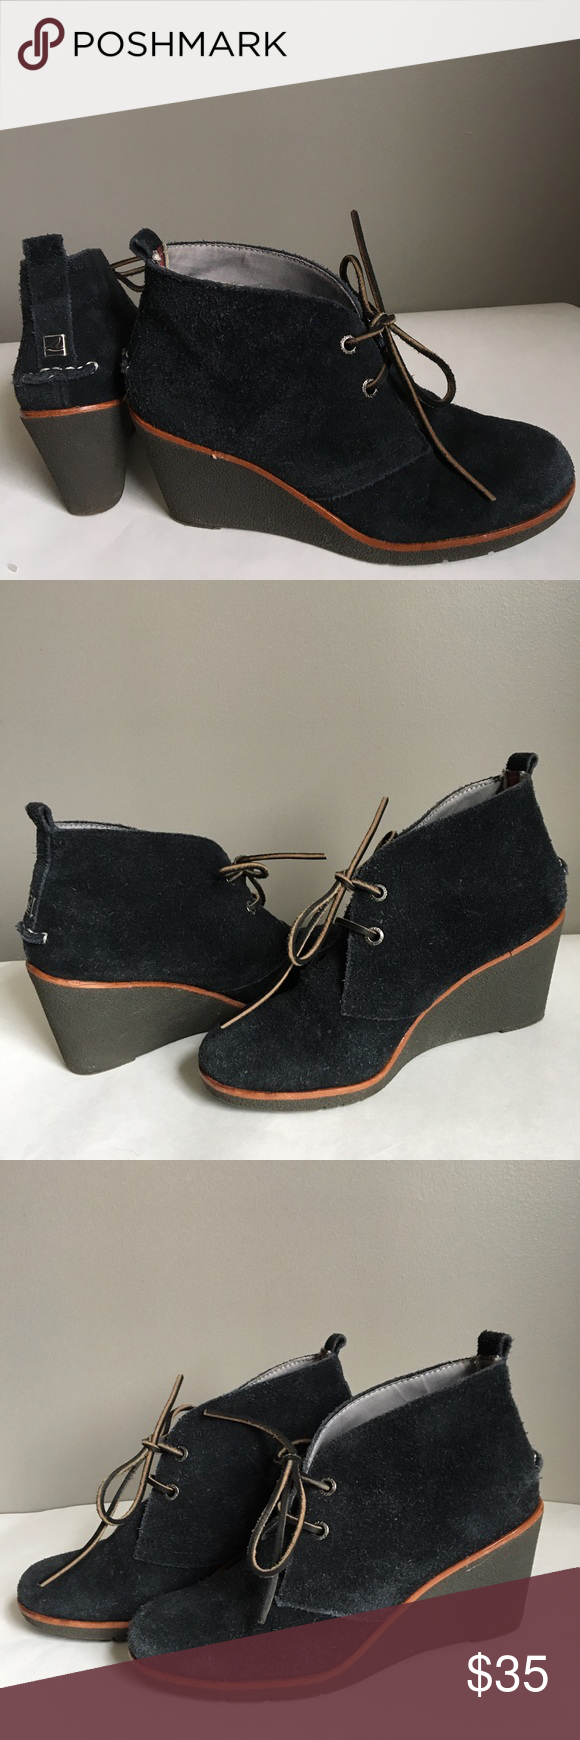 Sperry Top Sider Suede Navy Wedge Ankle Bootie Size 6M  Suede ankle bootie.  Good Used Condition  Su...